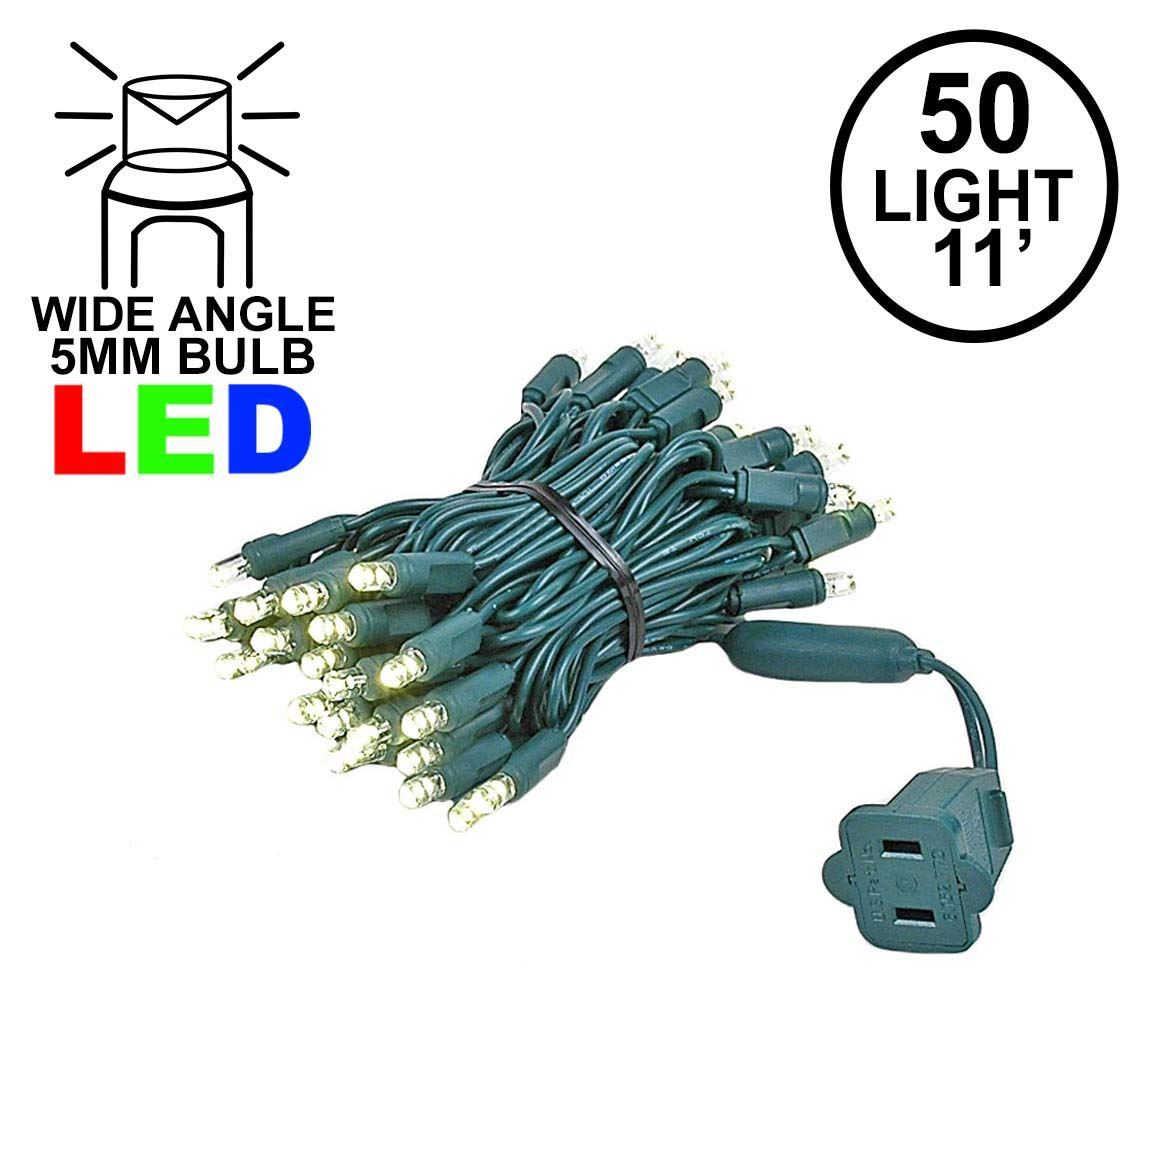 Picture of 50 LED Warm White LED Christmas Lights 11' Long on Green Wire